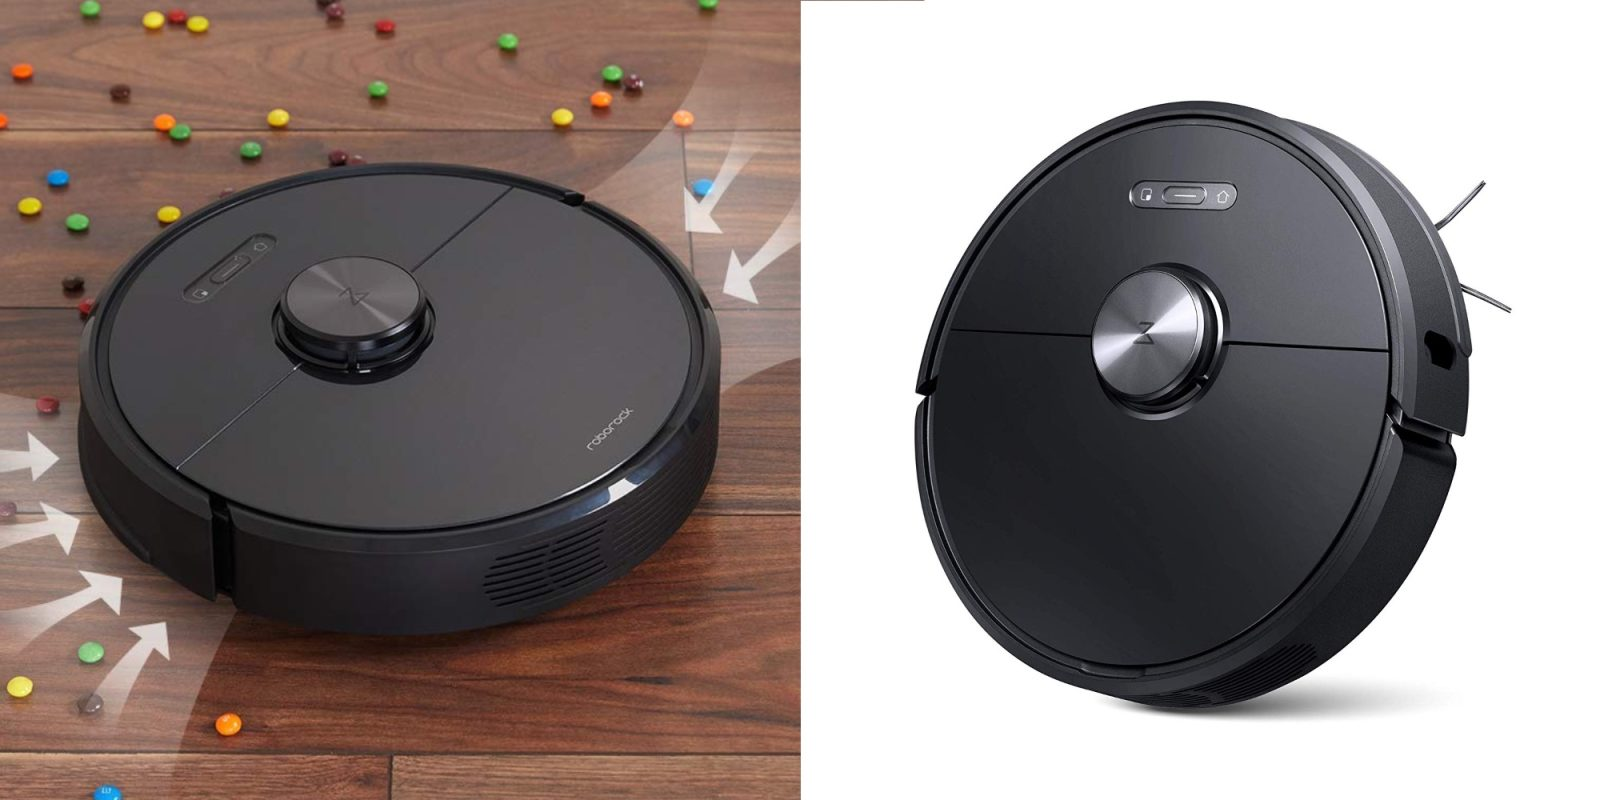 Roborock S6 Robotic Vacuum Comes Packed Full Of Features